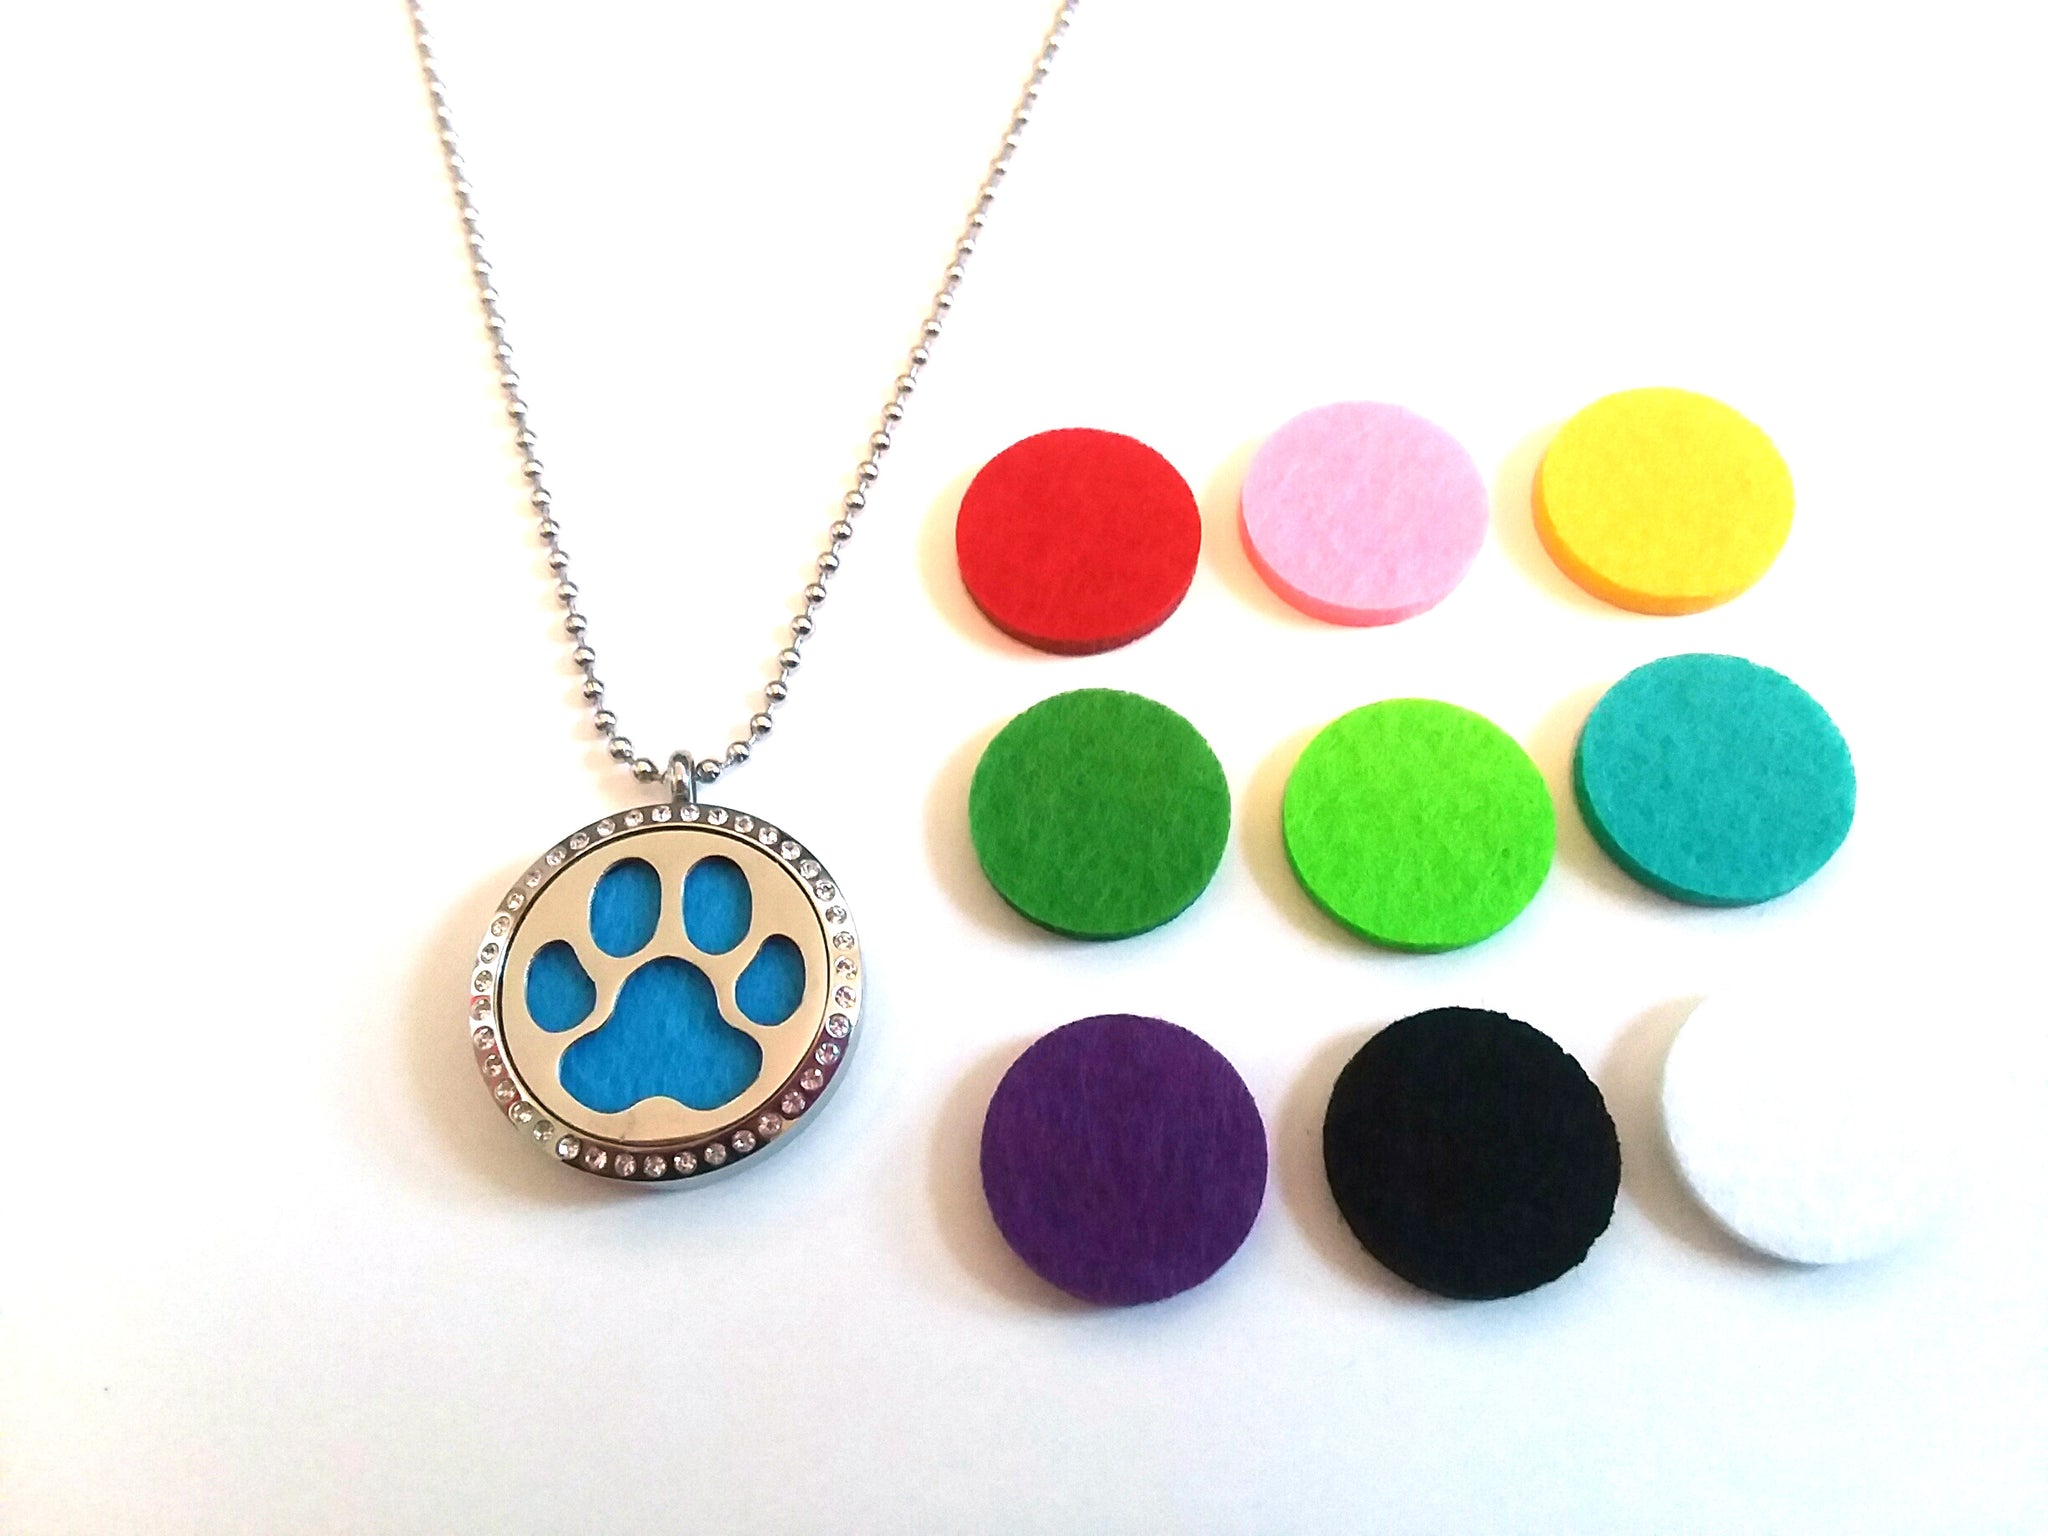 Stainless Steel Aromatherapy Locket Necklace - Large Paw Print